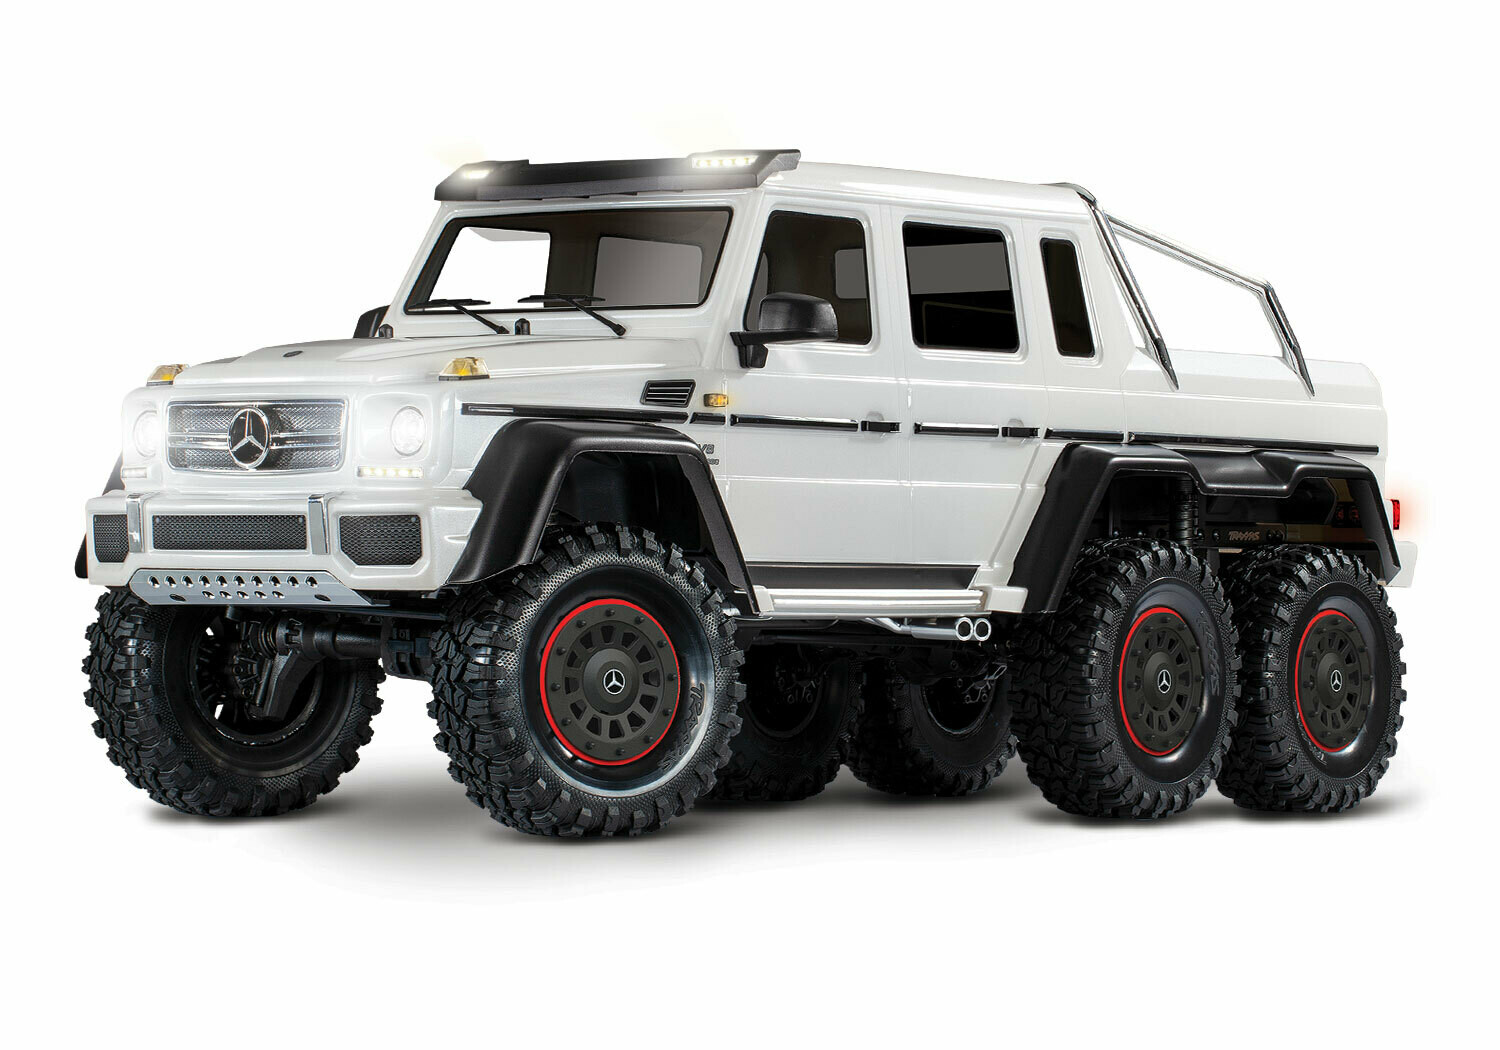 Traxxas TRX-6 Gloss White Metallic Mercedes-Benz G 63 AMG 6x6 (XL-5HV, TQi, LED Lights) (Wireless Module/3S 5000mAh LiPo Battery/Live iD Charger/Phone Mount) - Special Edition